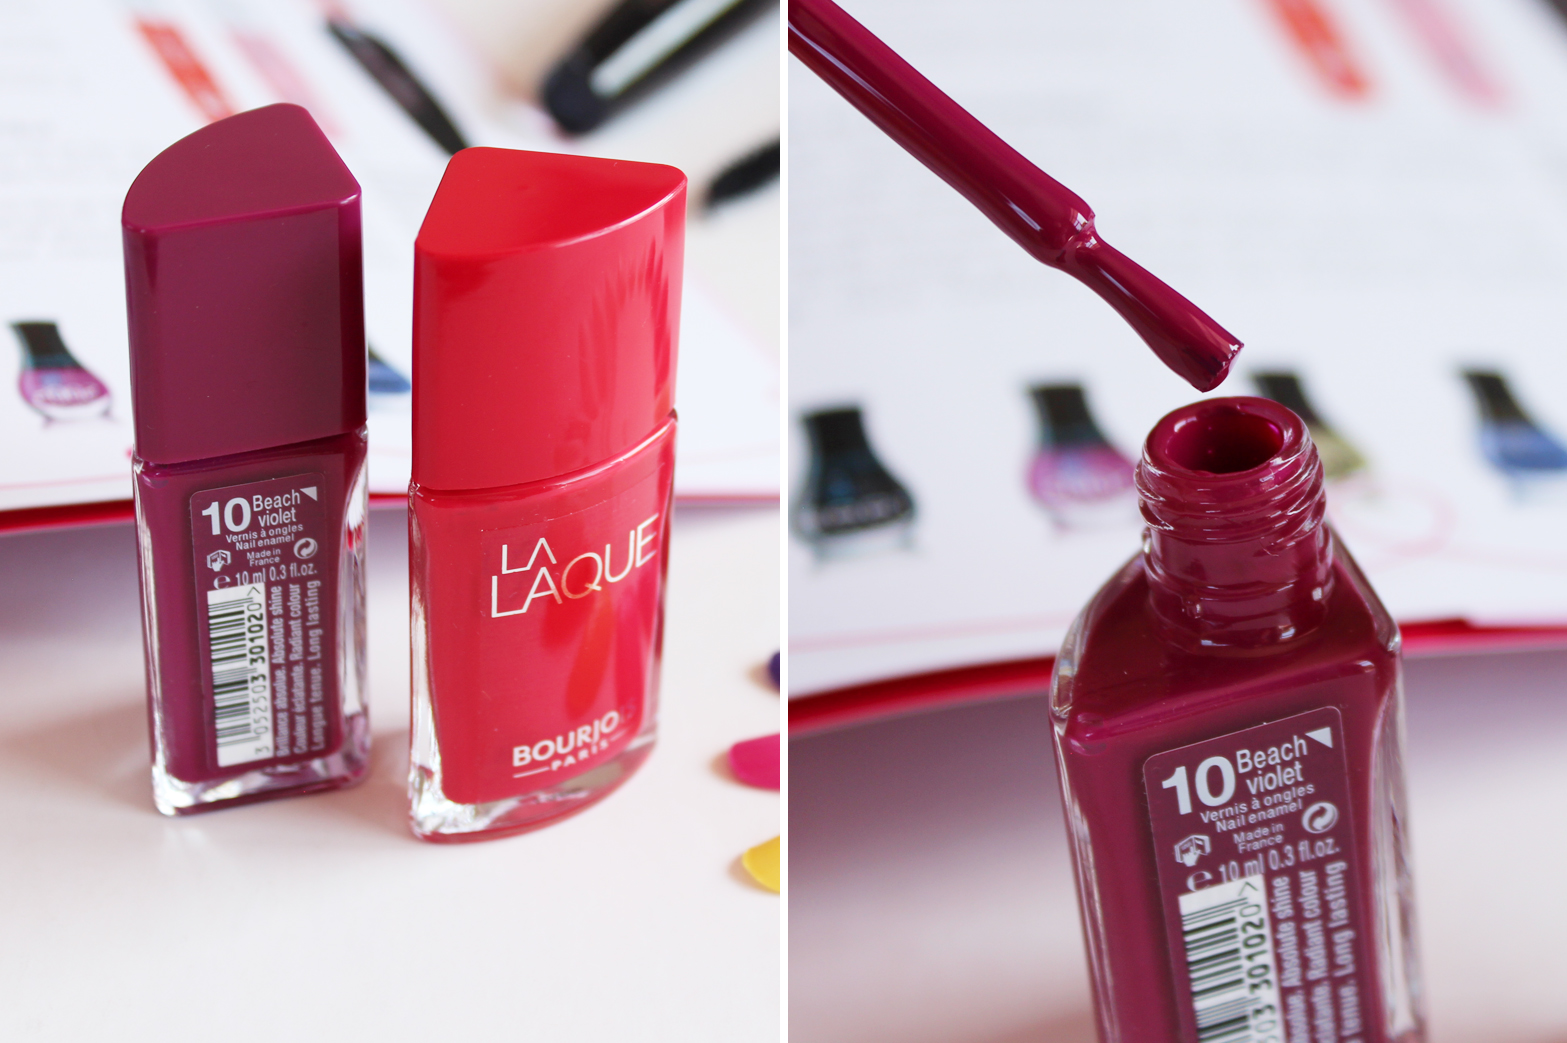 BOURJOIS PARIS | Upcoming Releases + First Impressions - La Laque Nail Polish - CassandraMyee